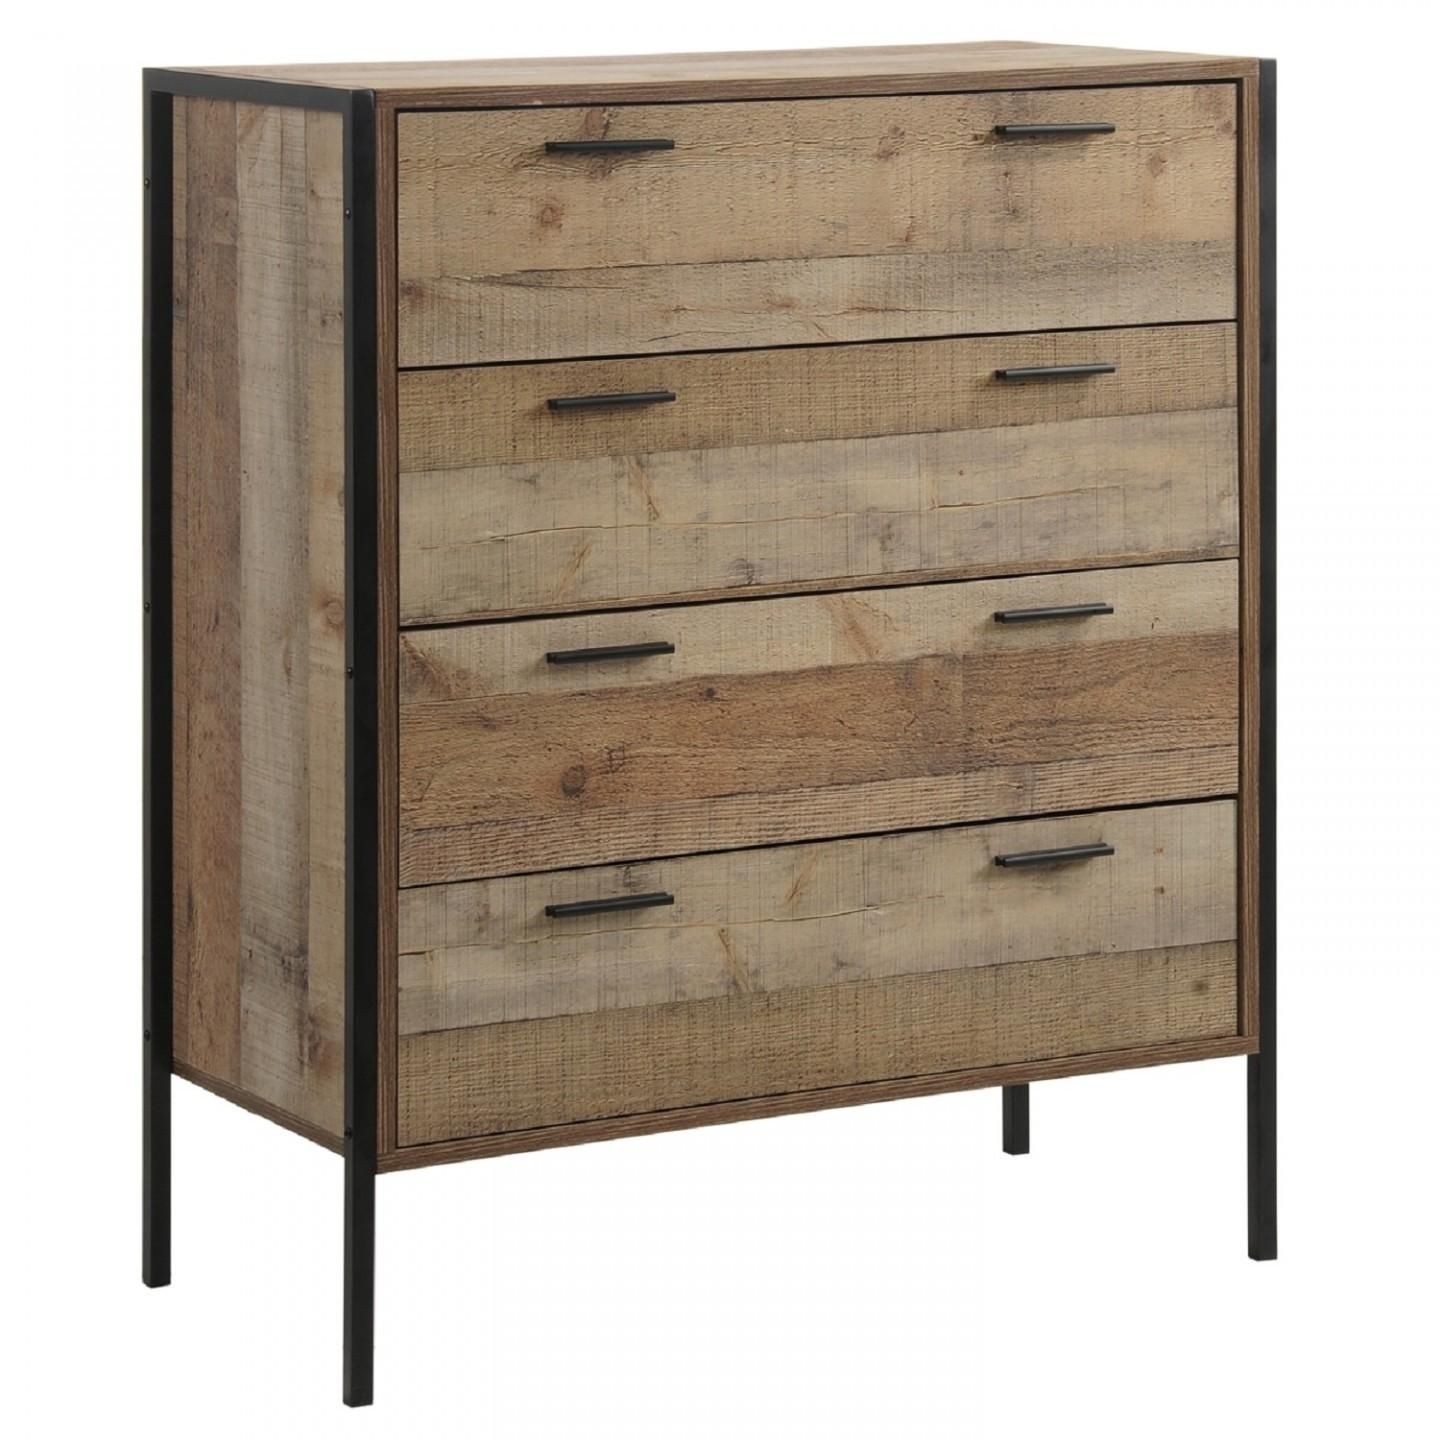 Stretton Rustic Industrial Chest Drawers